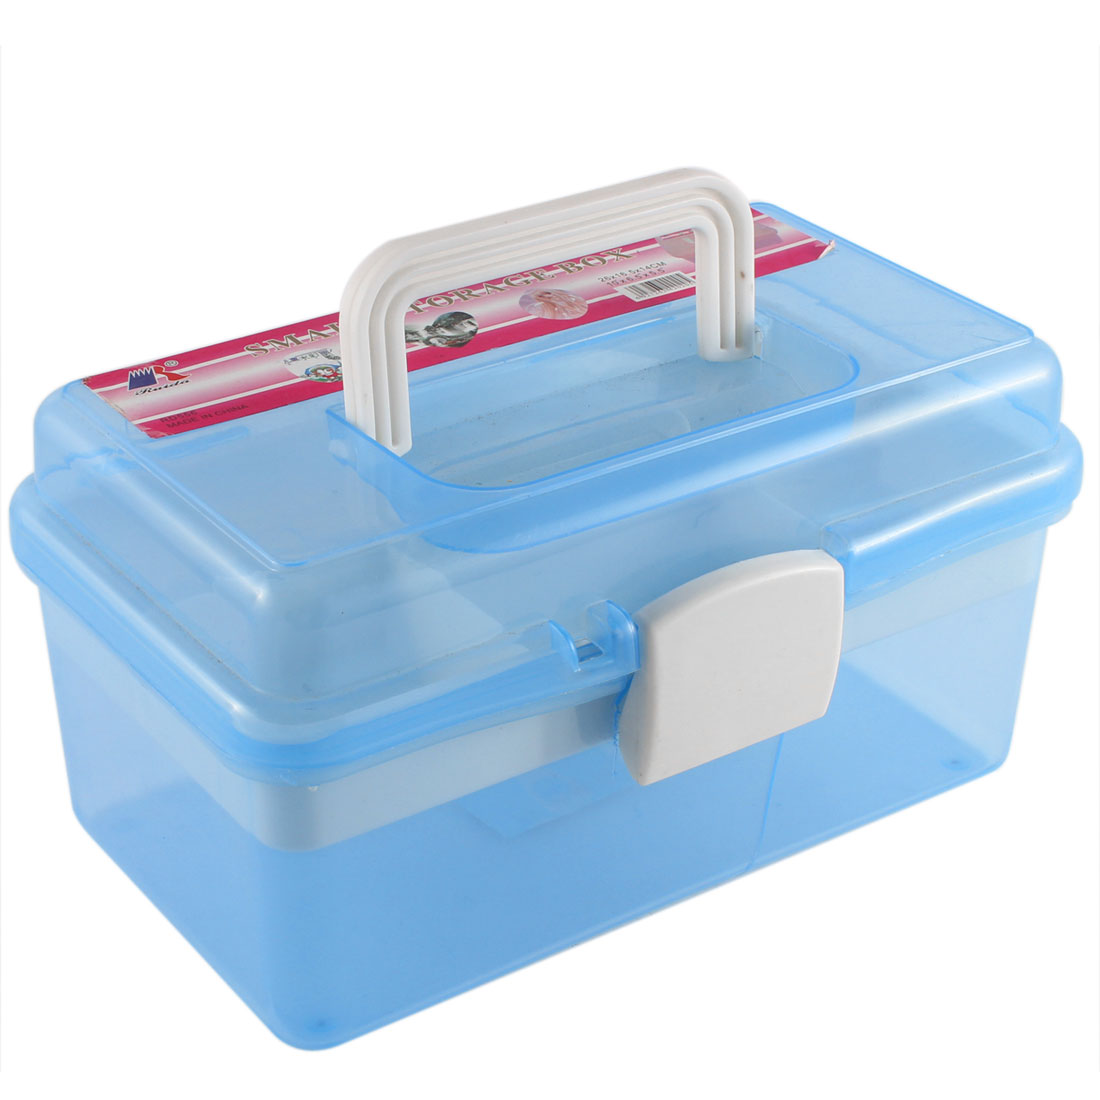 Clear Blue Plastic Rectangle Shaped Hardware Tool Storage Box Holder Case